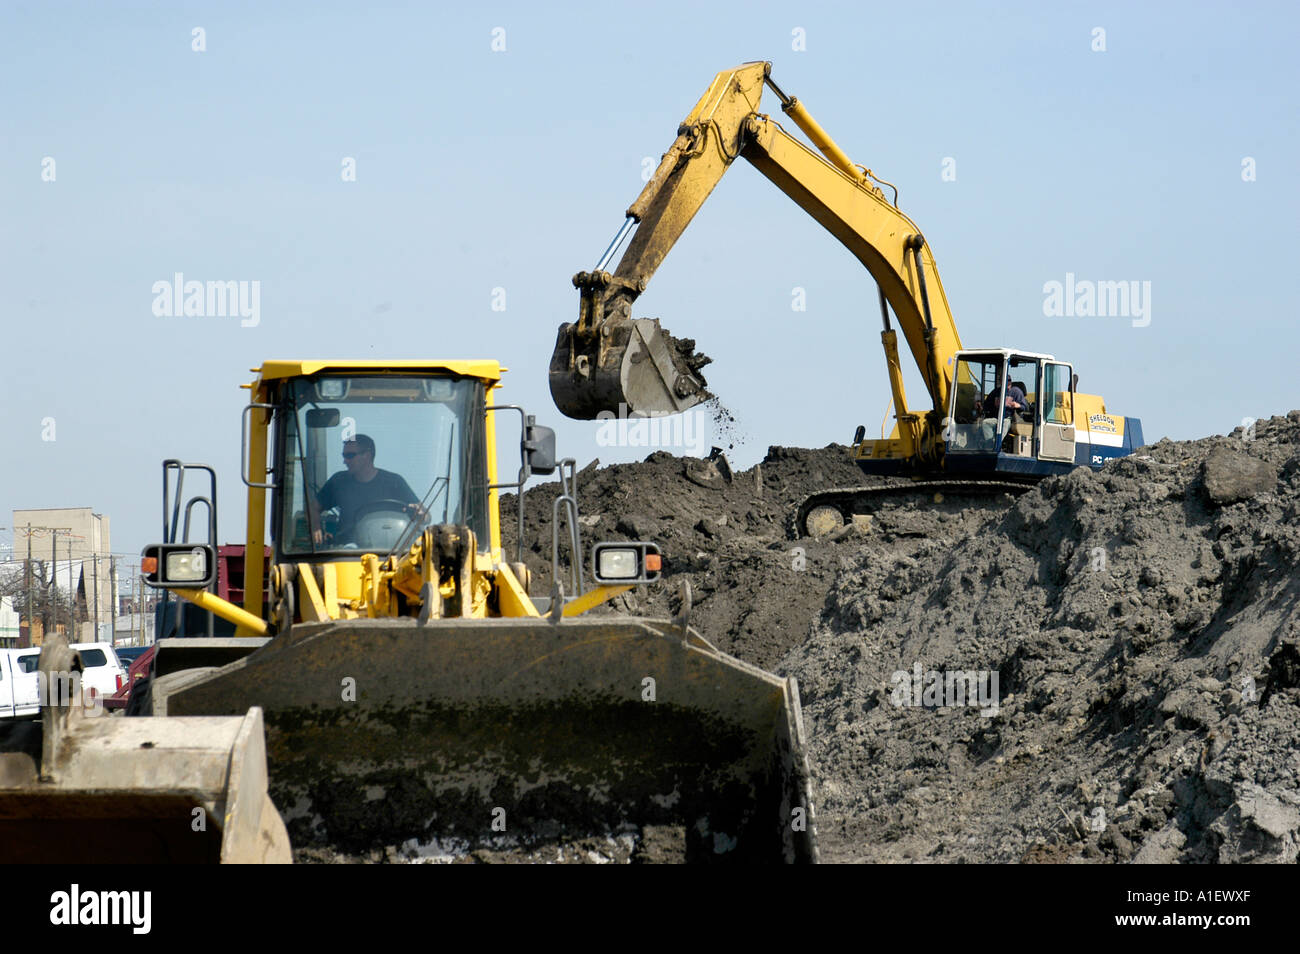 heavy equipment and manual labor us used in road repair and new rh alamy com heavy equipment manuals free download heavy equipment manuals free download